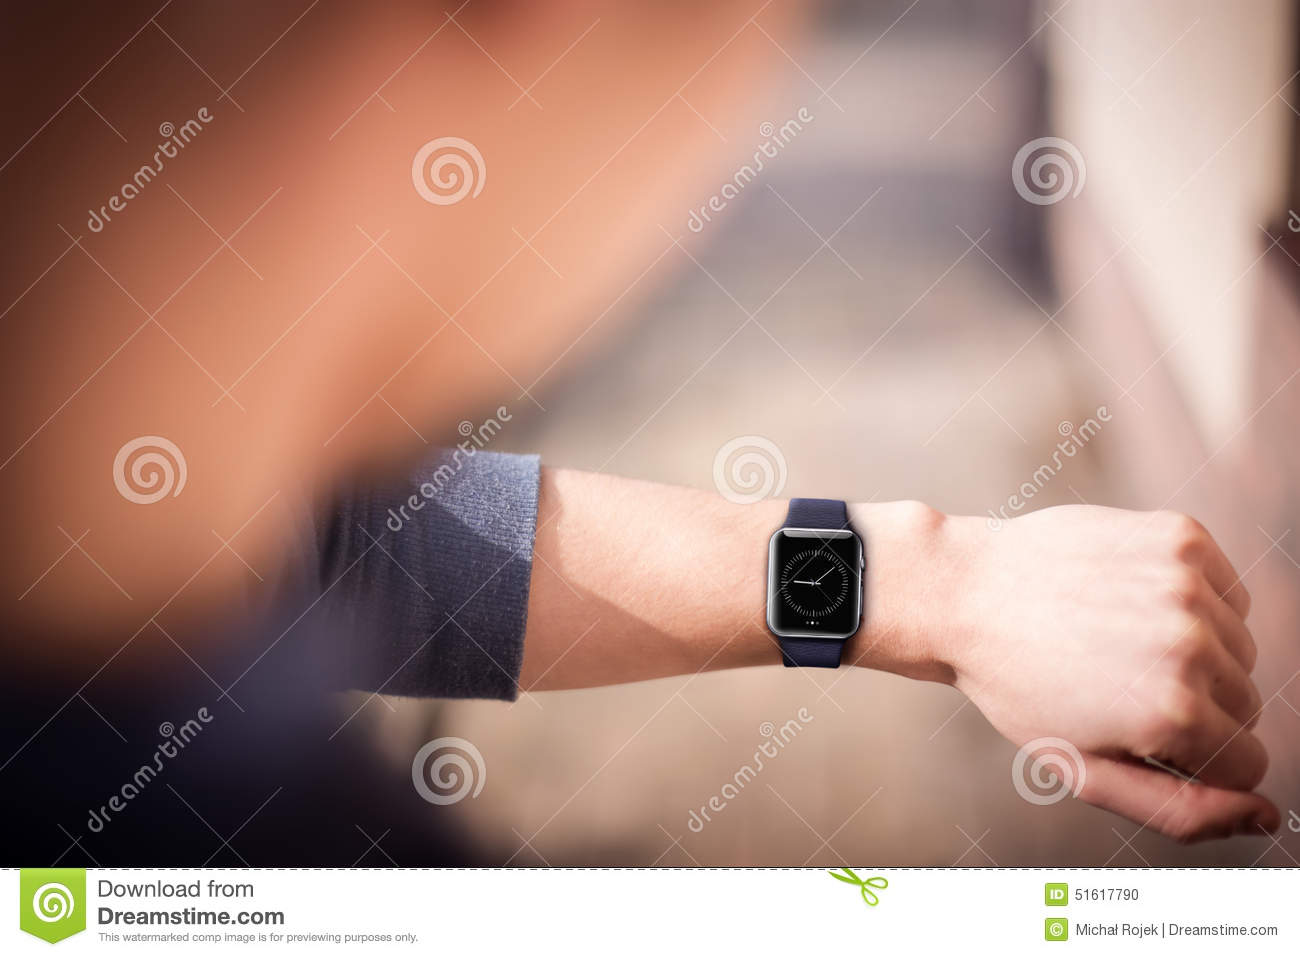 Hand wearing smartwatch